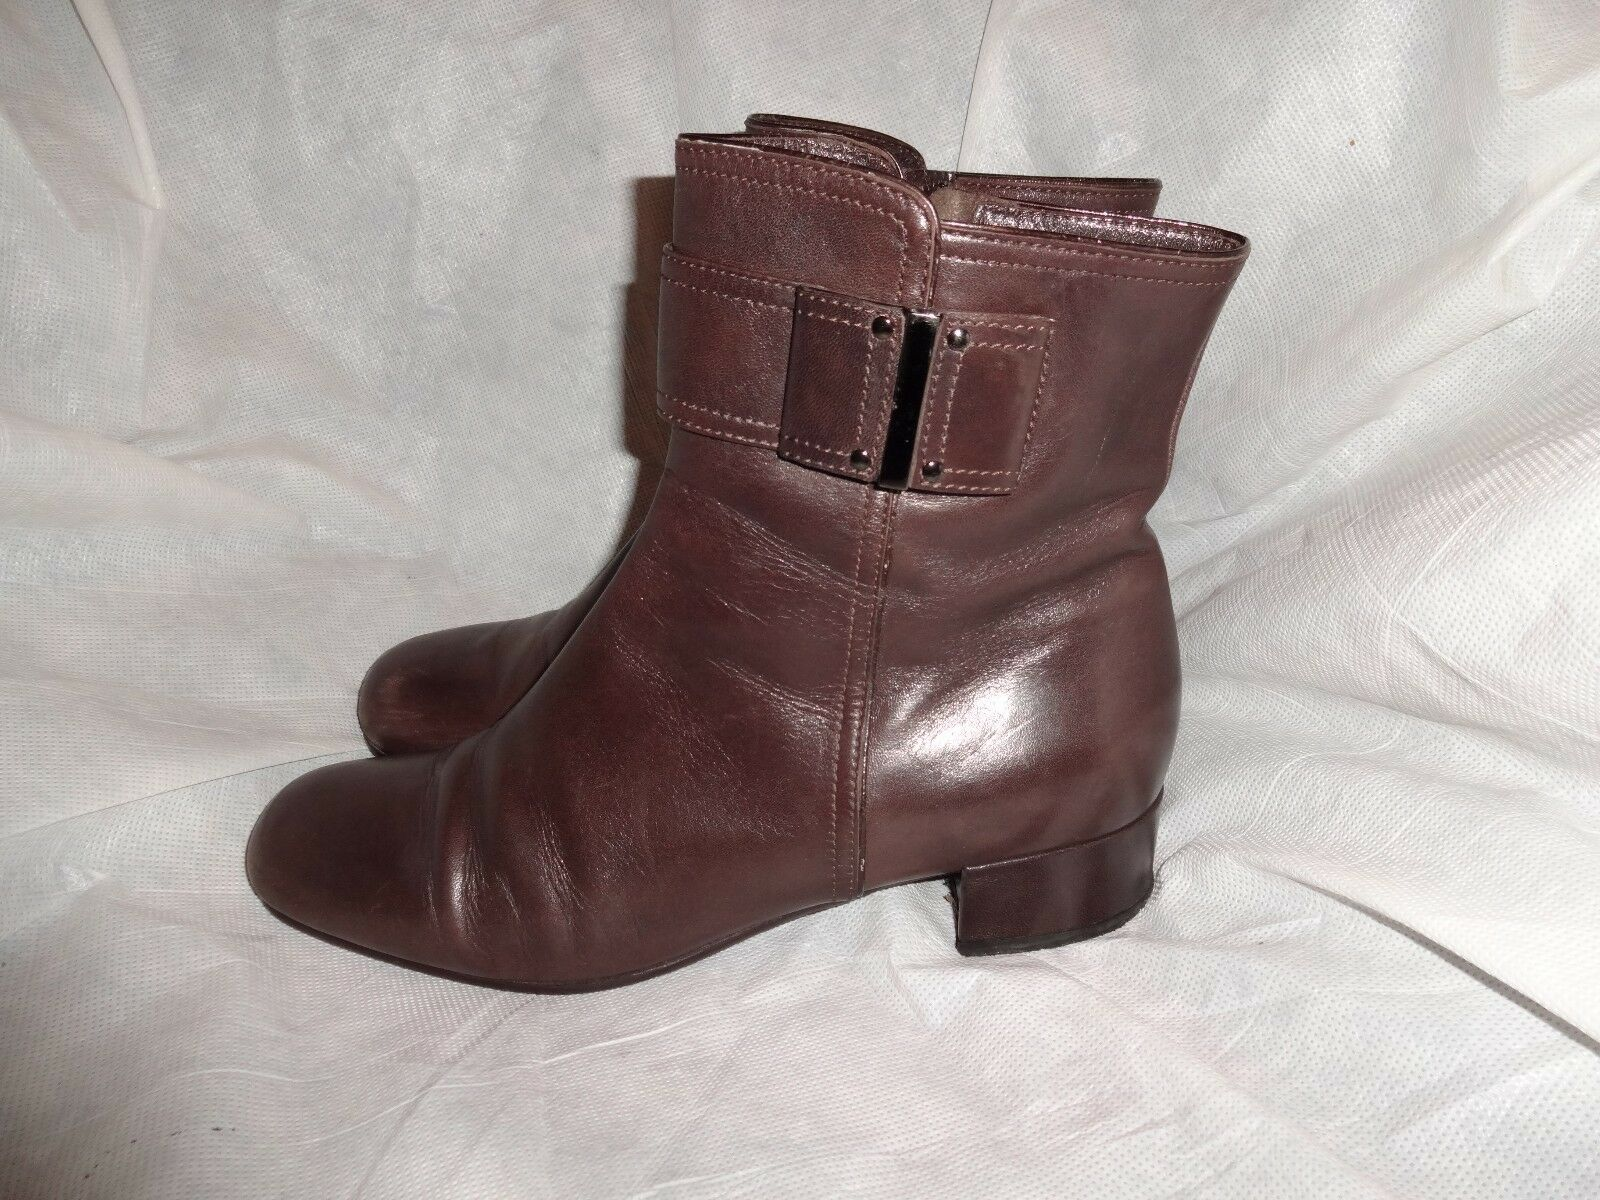 KOCAL WOMEN BROWN LEATHER ZIP ON ANKLE BOOT SIZE VGC